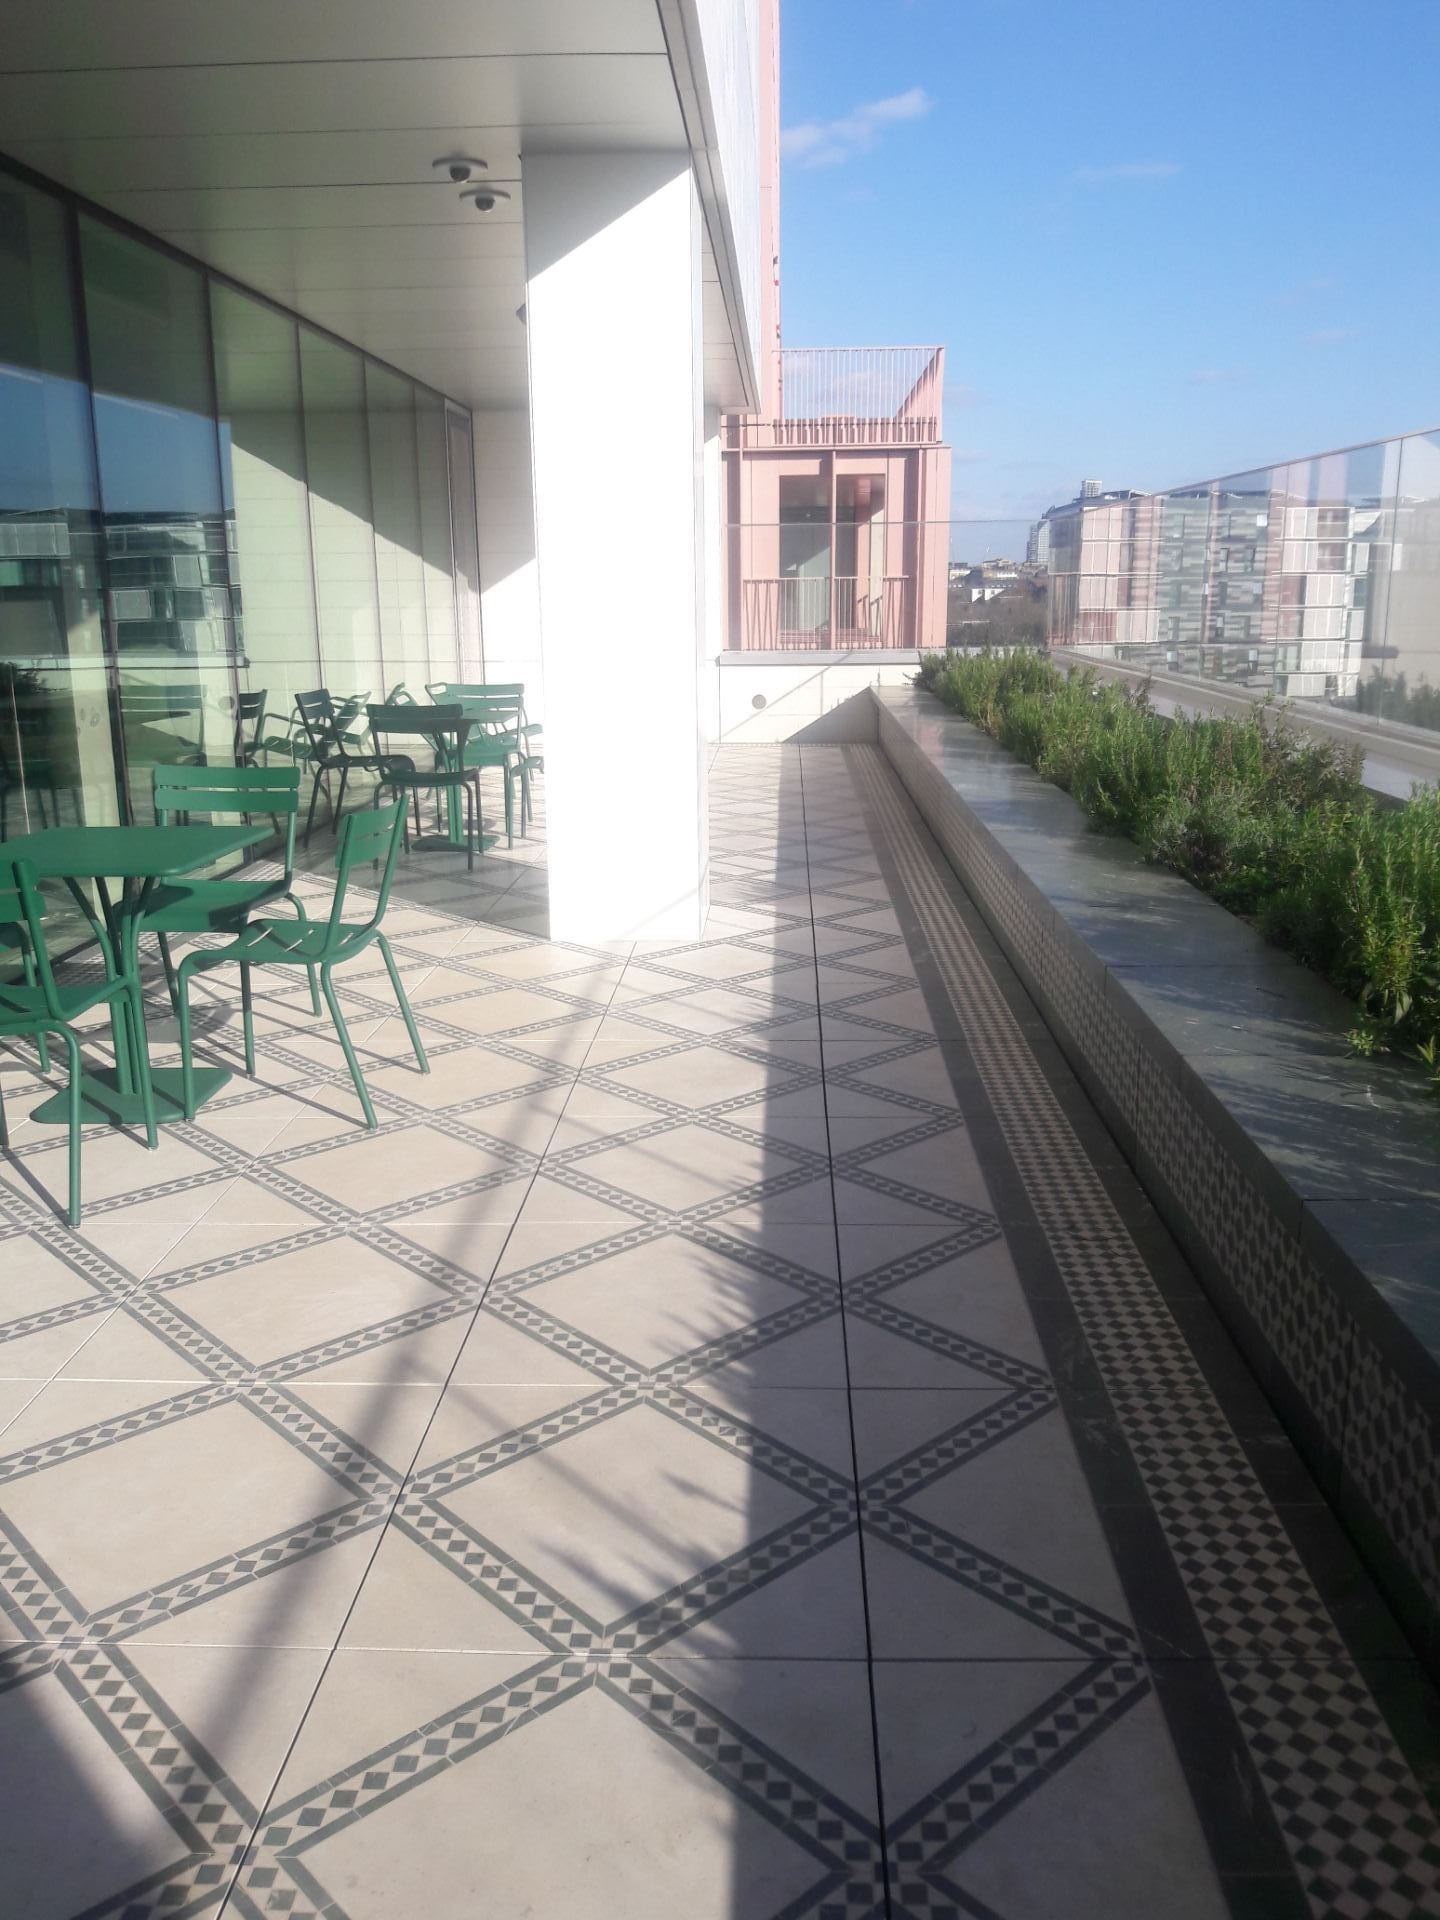 The Terrace of learning, a semi covered terrace in the sunlight. Floor tiles with geometric pattern in the North African style. Green garden tables and chairs sit close to the full length windows. Green evergreen herbs can be seen in the planter.